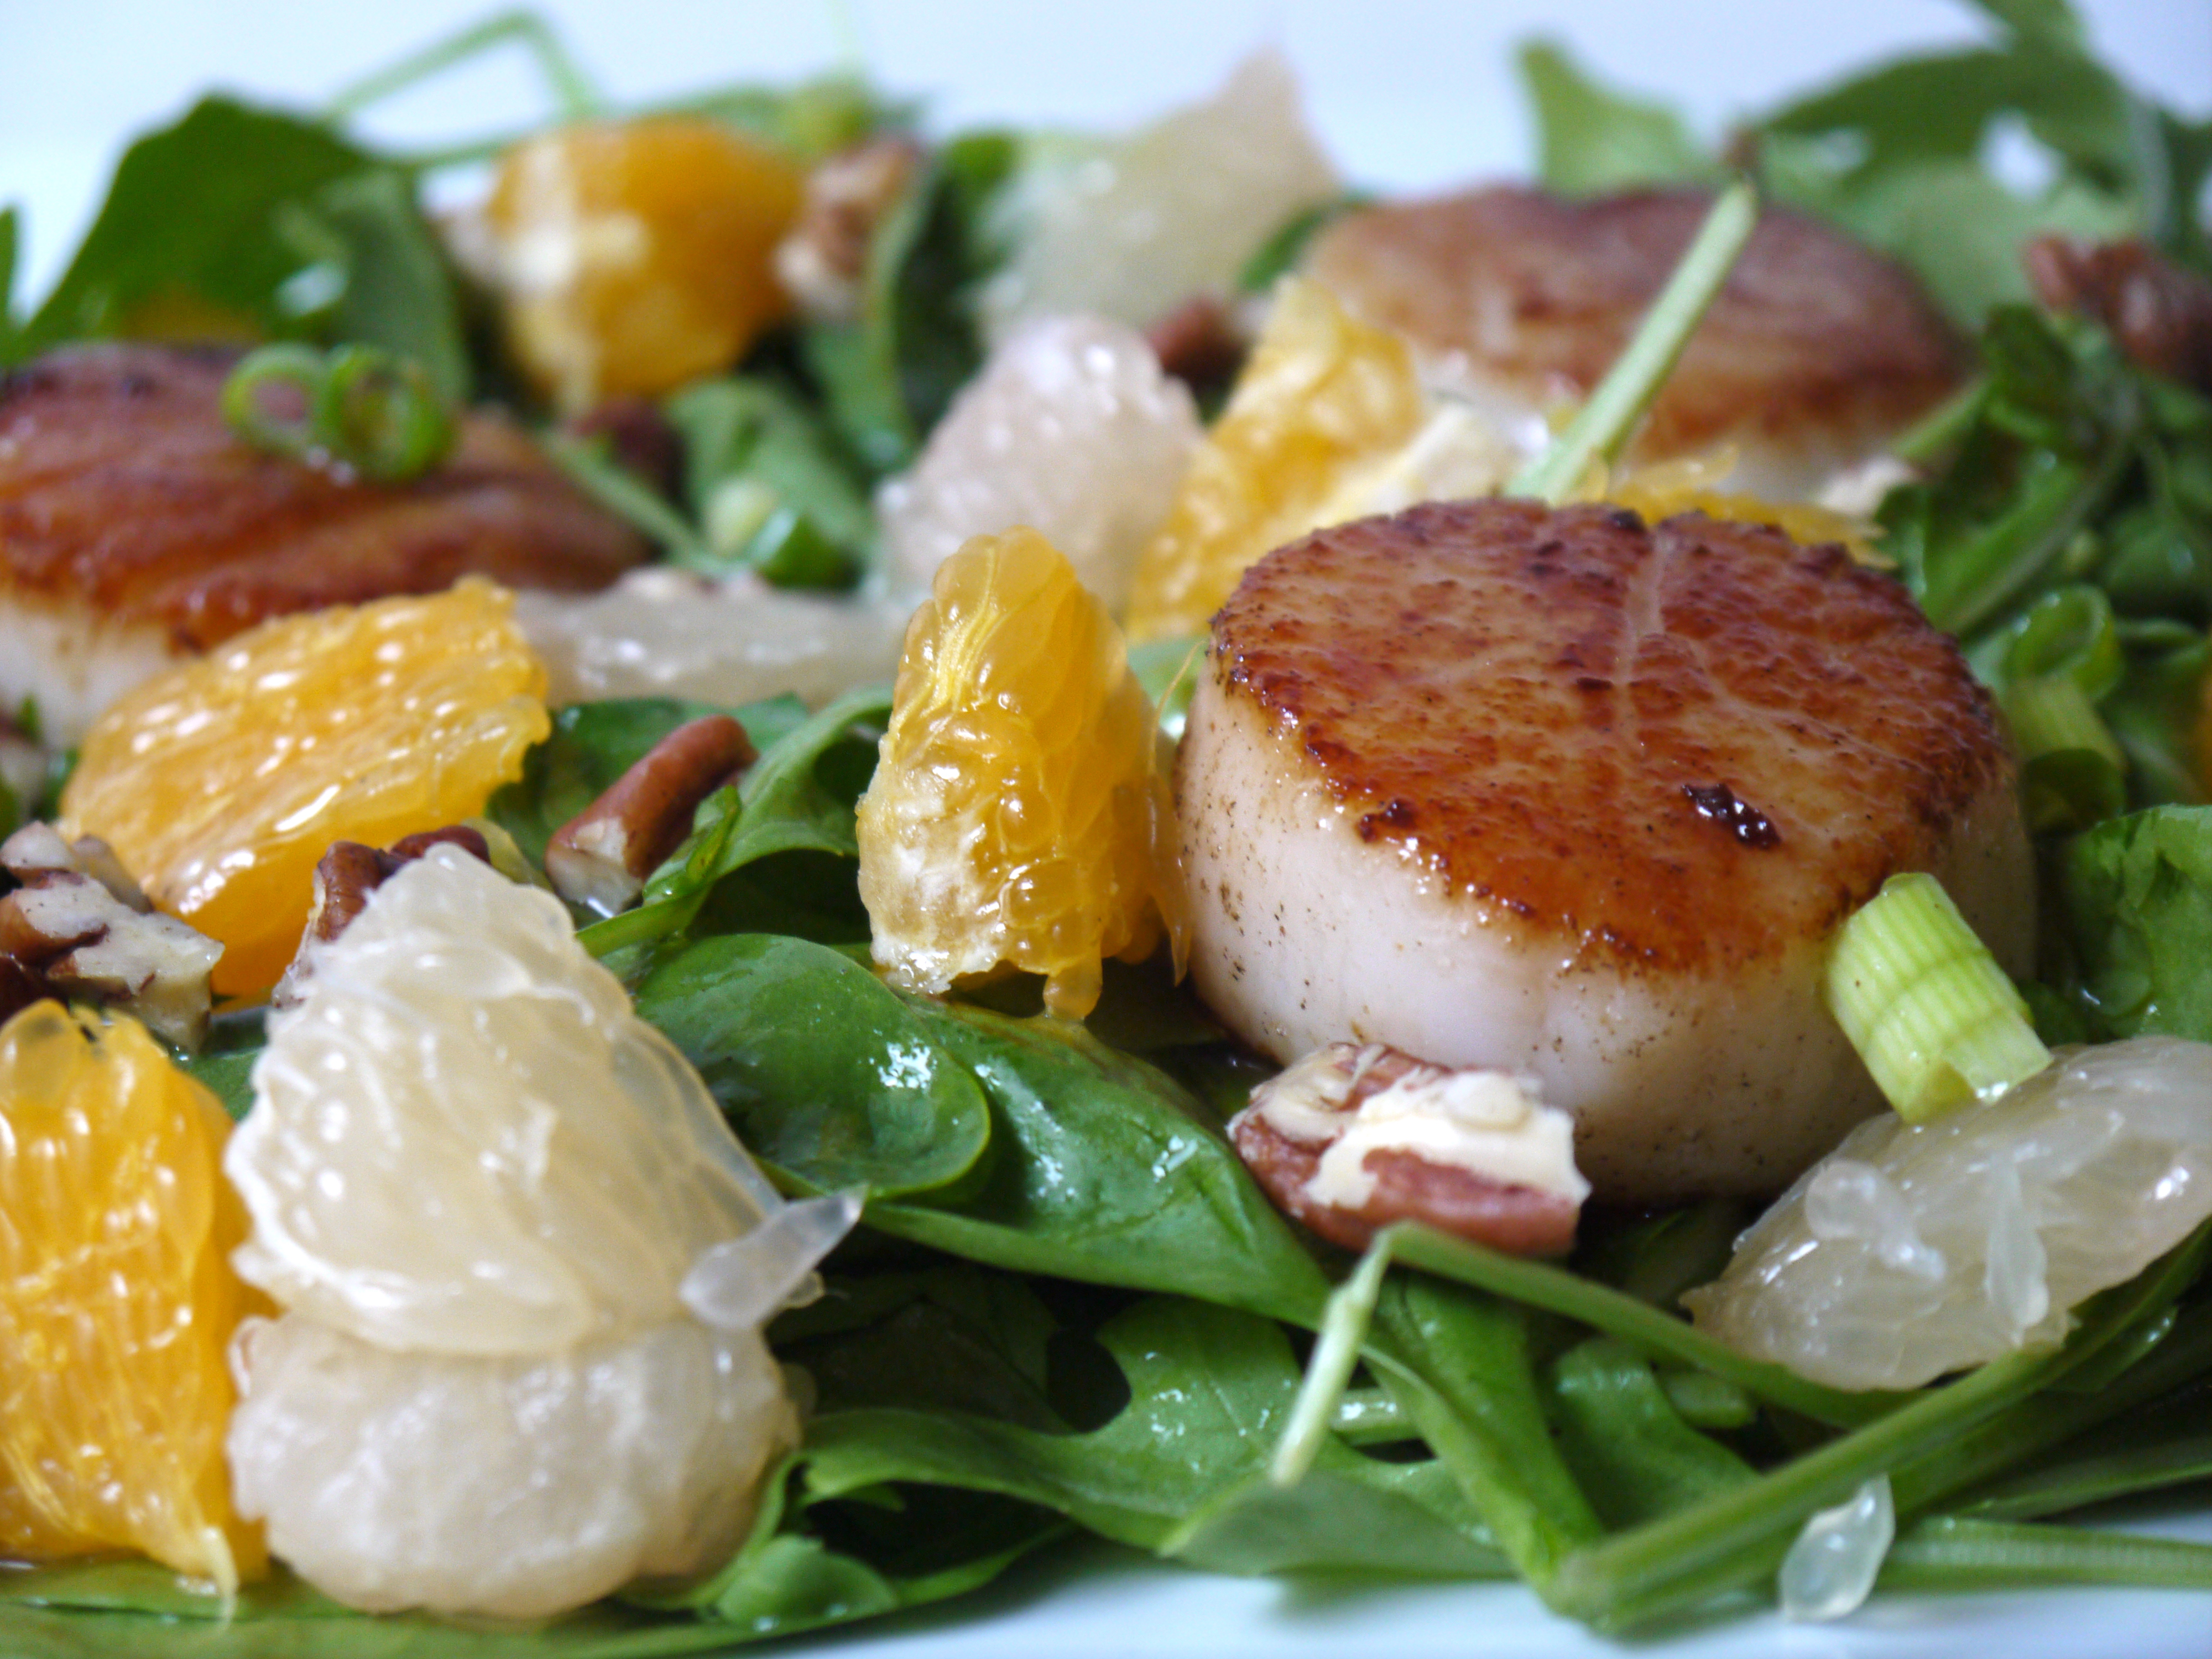 Whole Foods Scallops Price